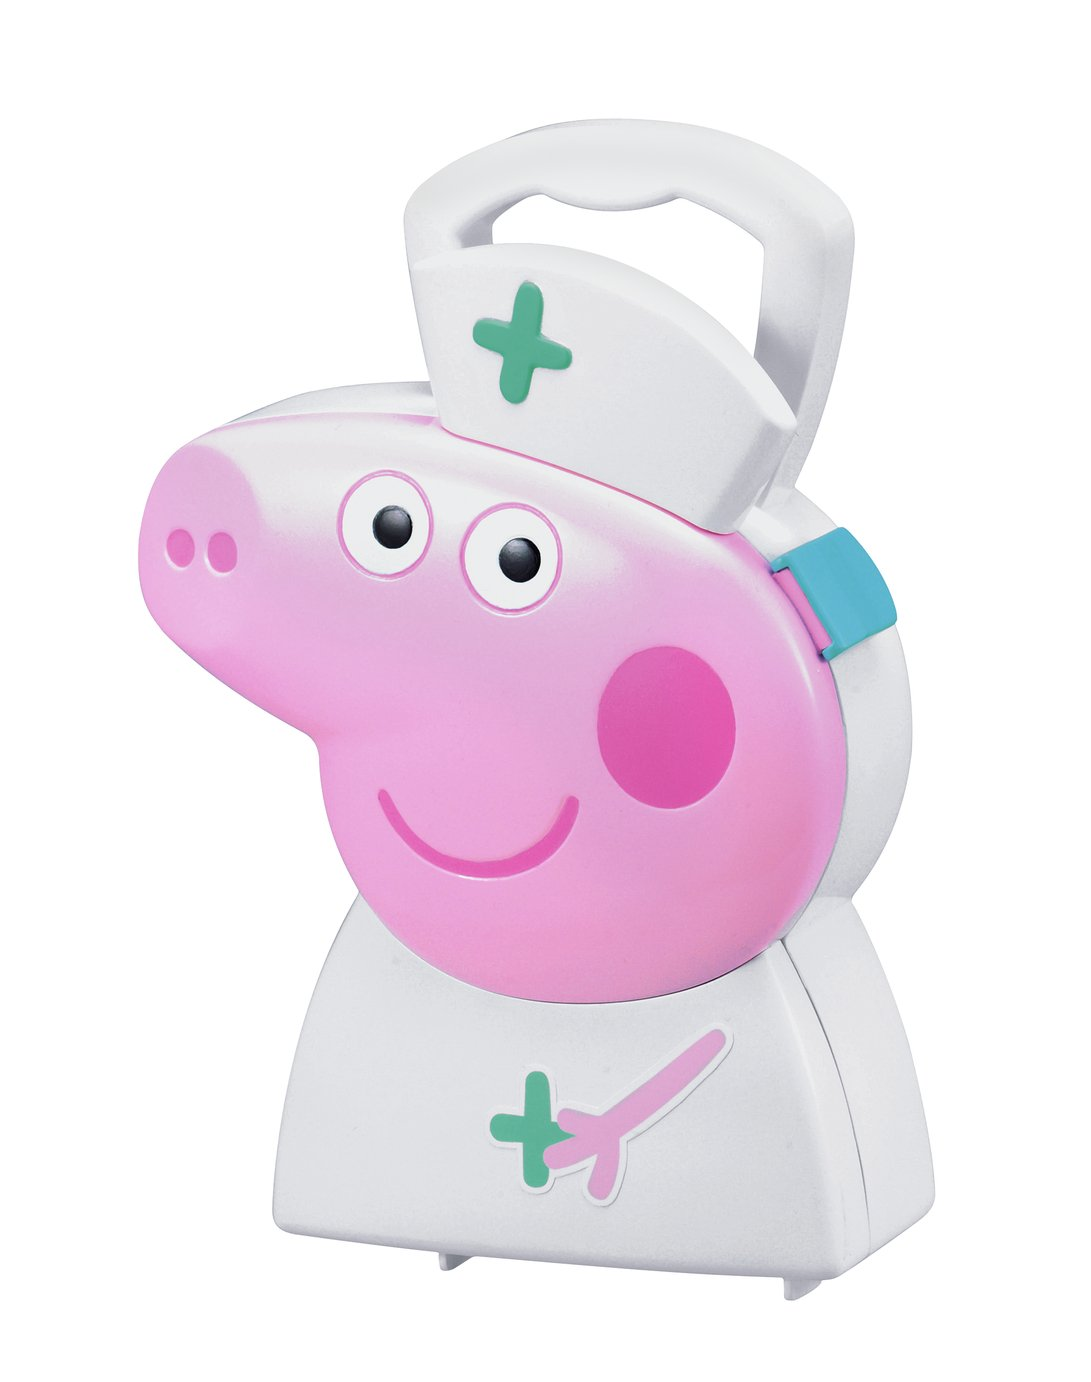 Sale On Peppa Pig Medic Case Peppa Pig Now Available